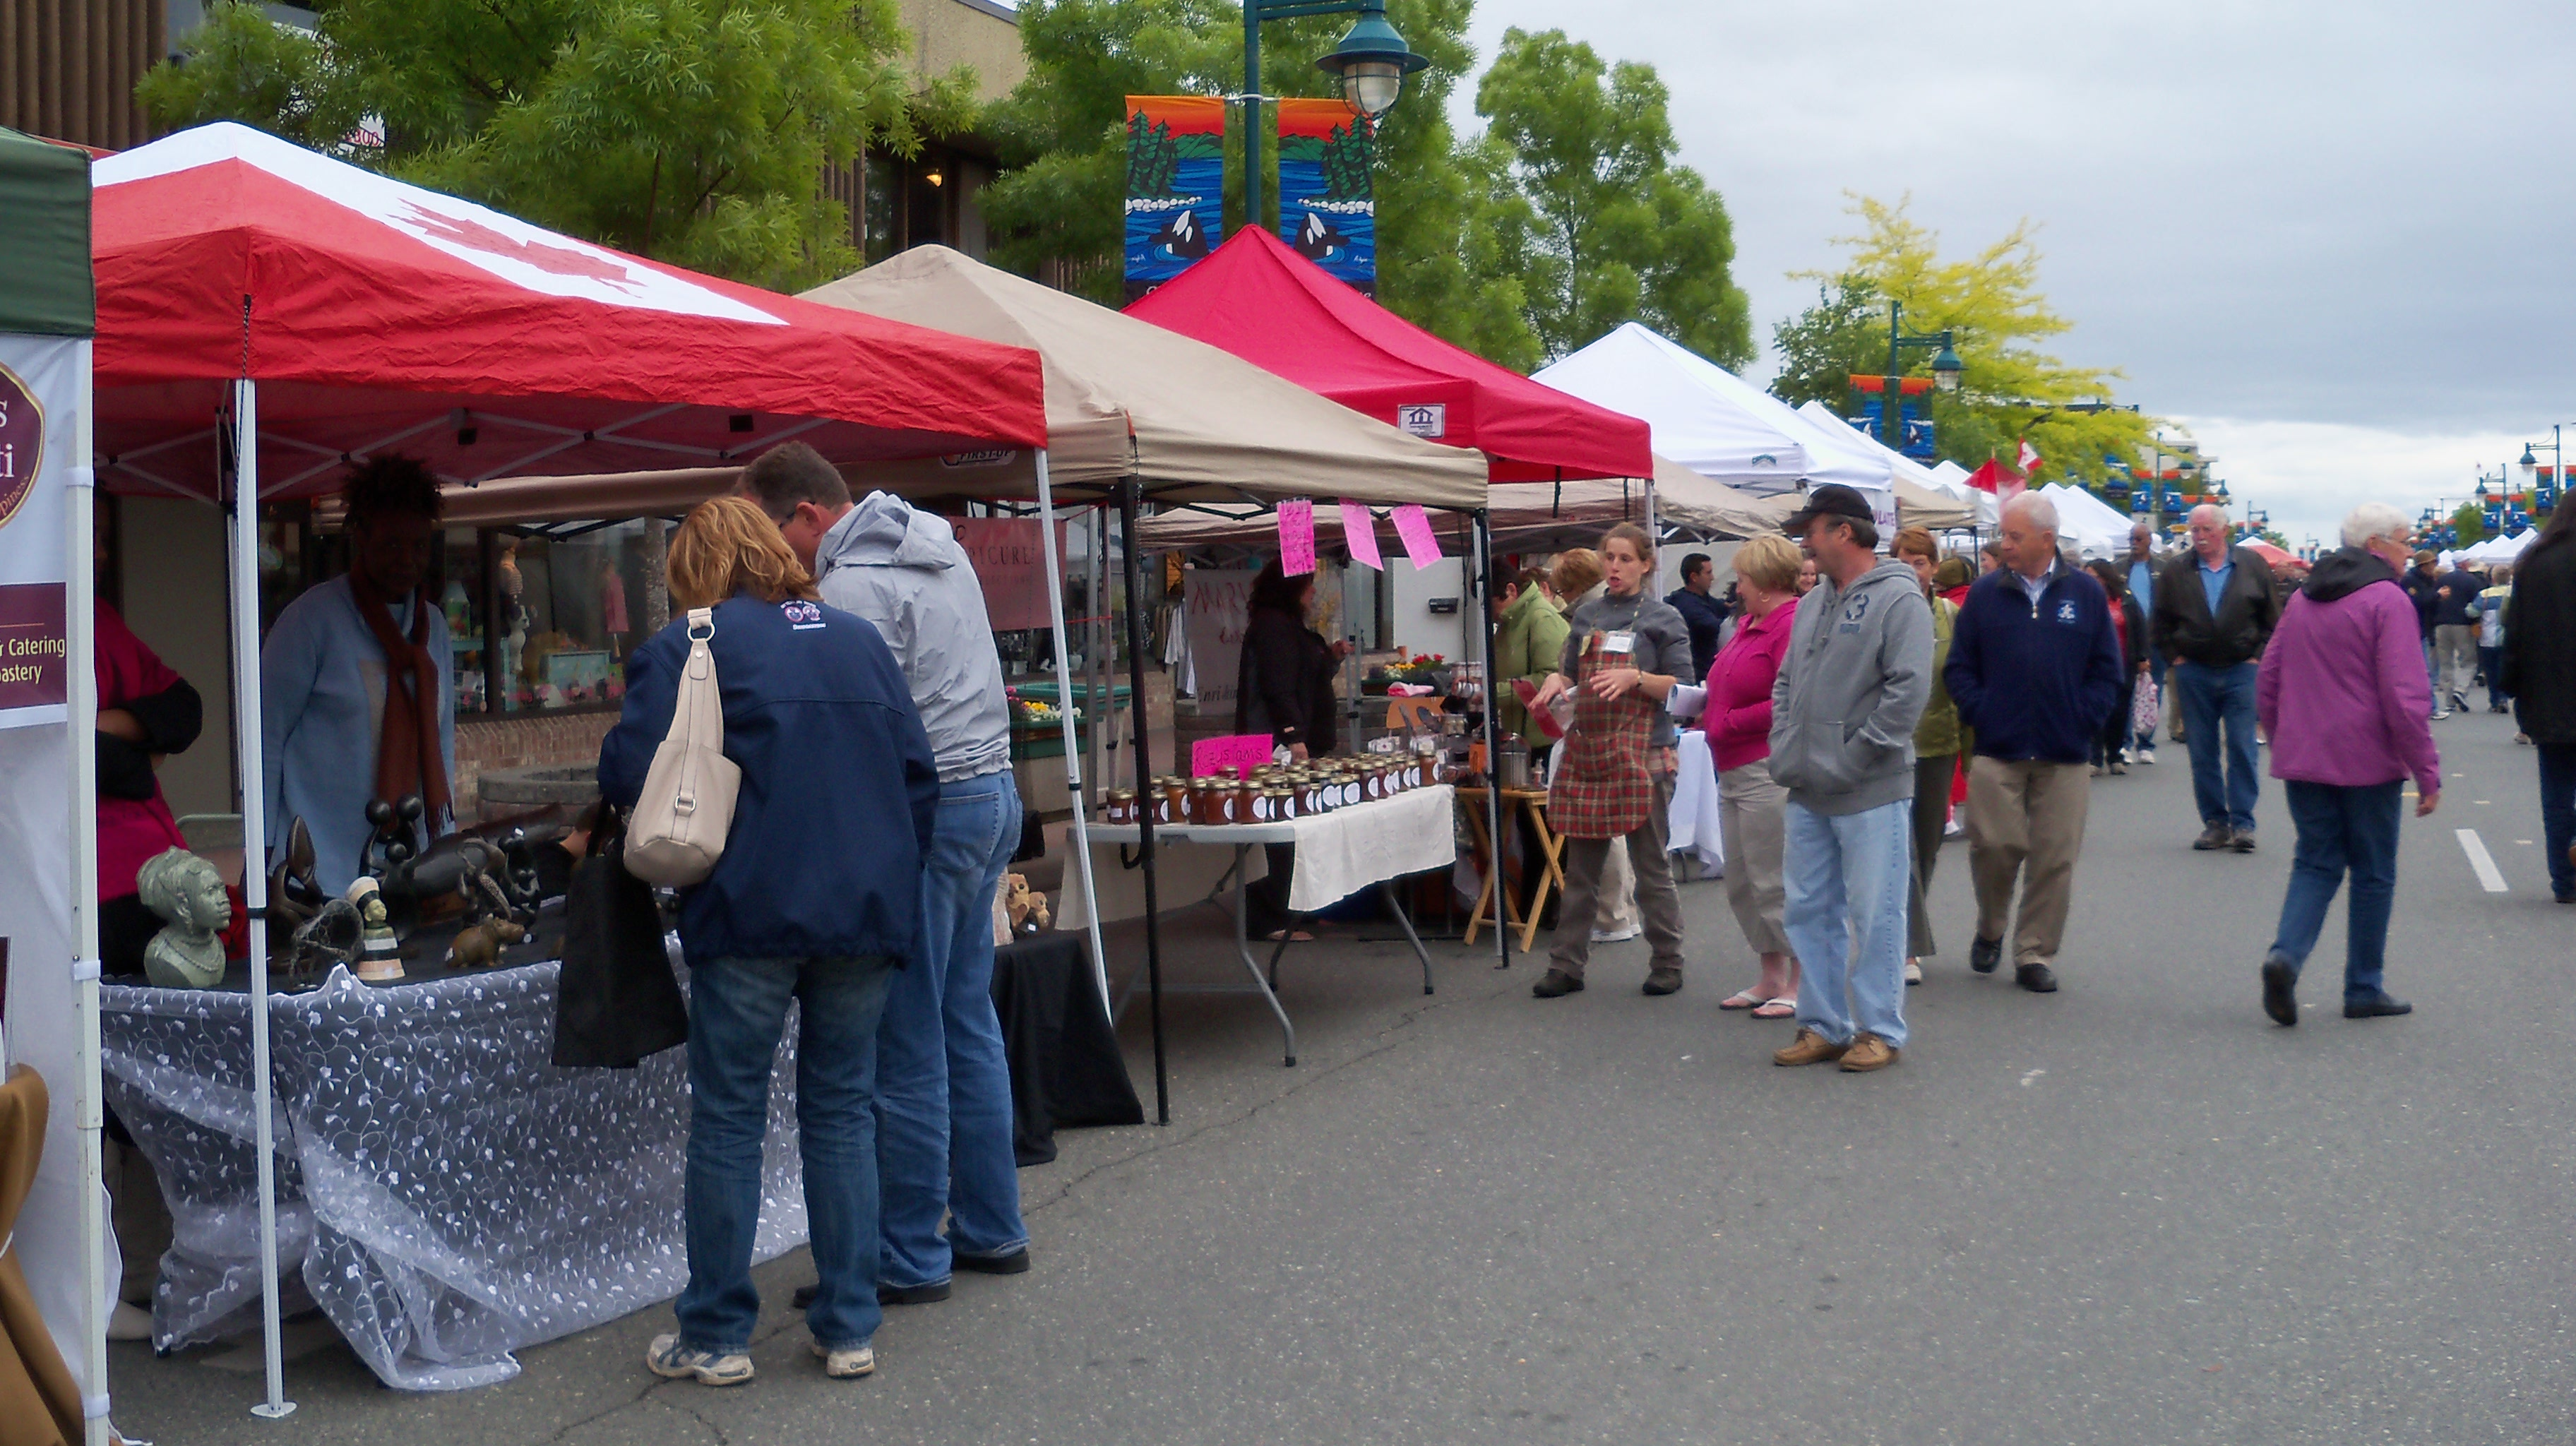 Over ... & SIDNEY SUMMER MARKET THE LARGEST STREET MARKET IN B.C | Cheryl ...